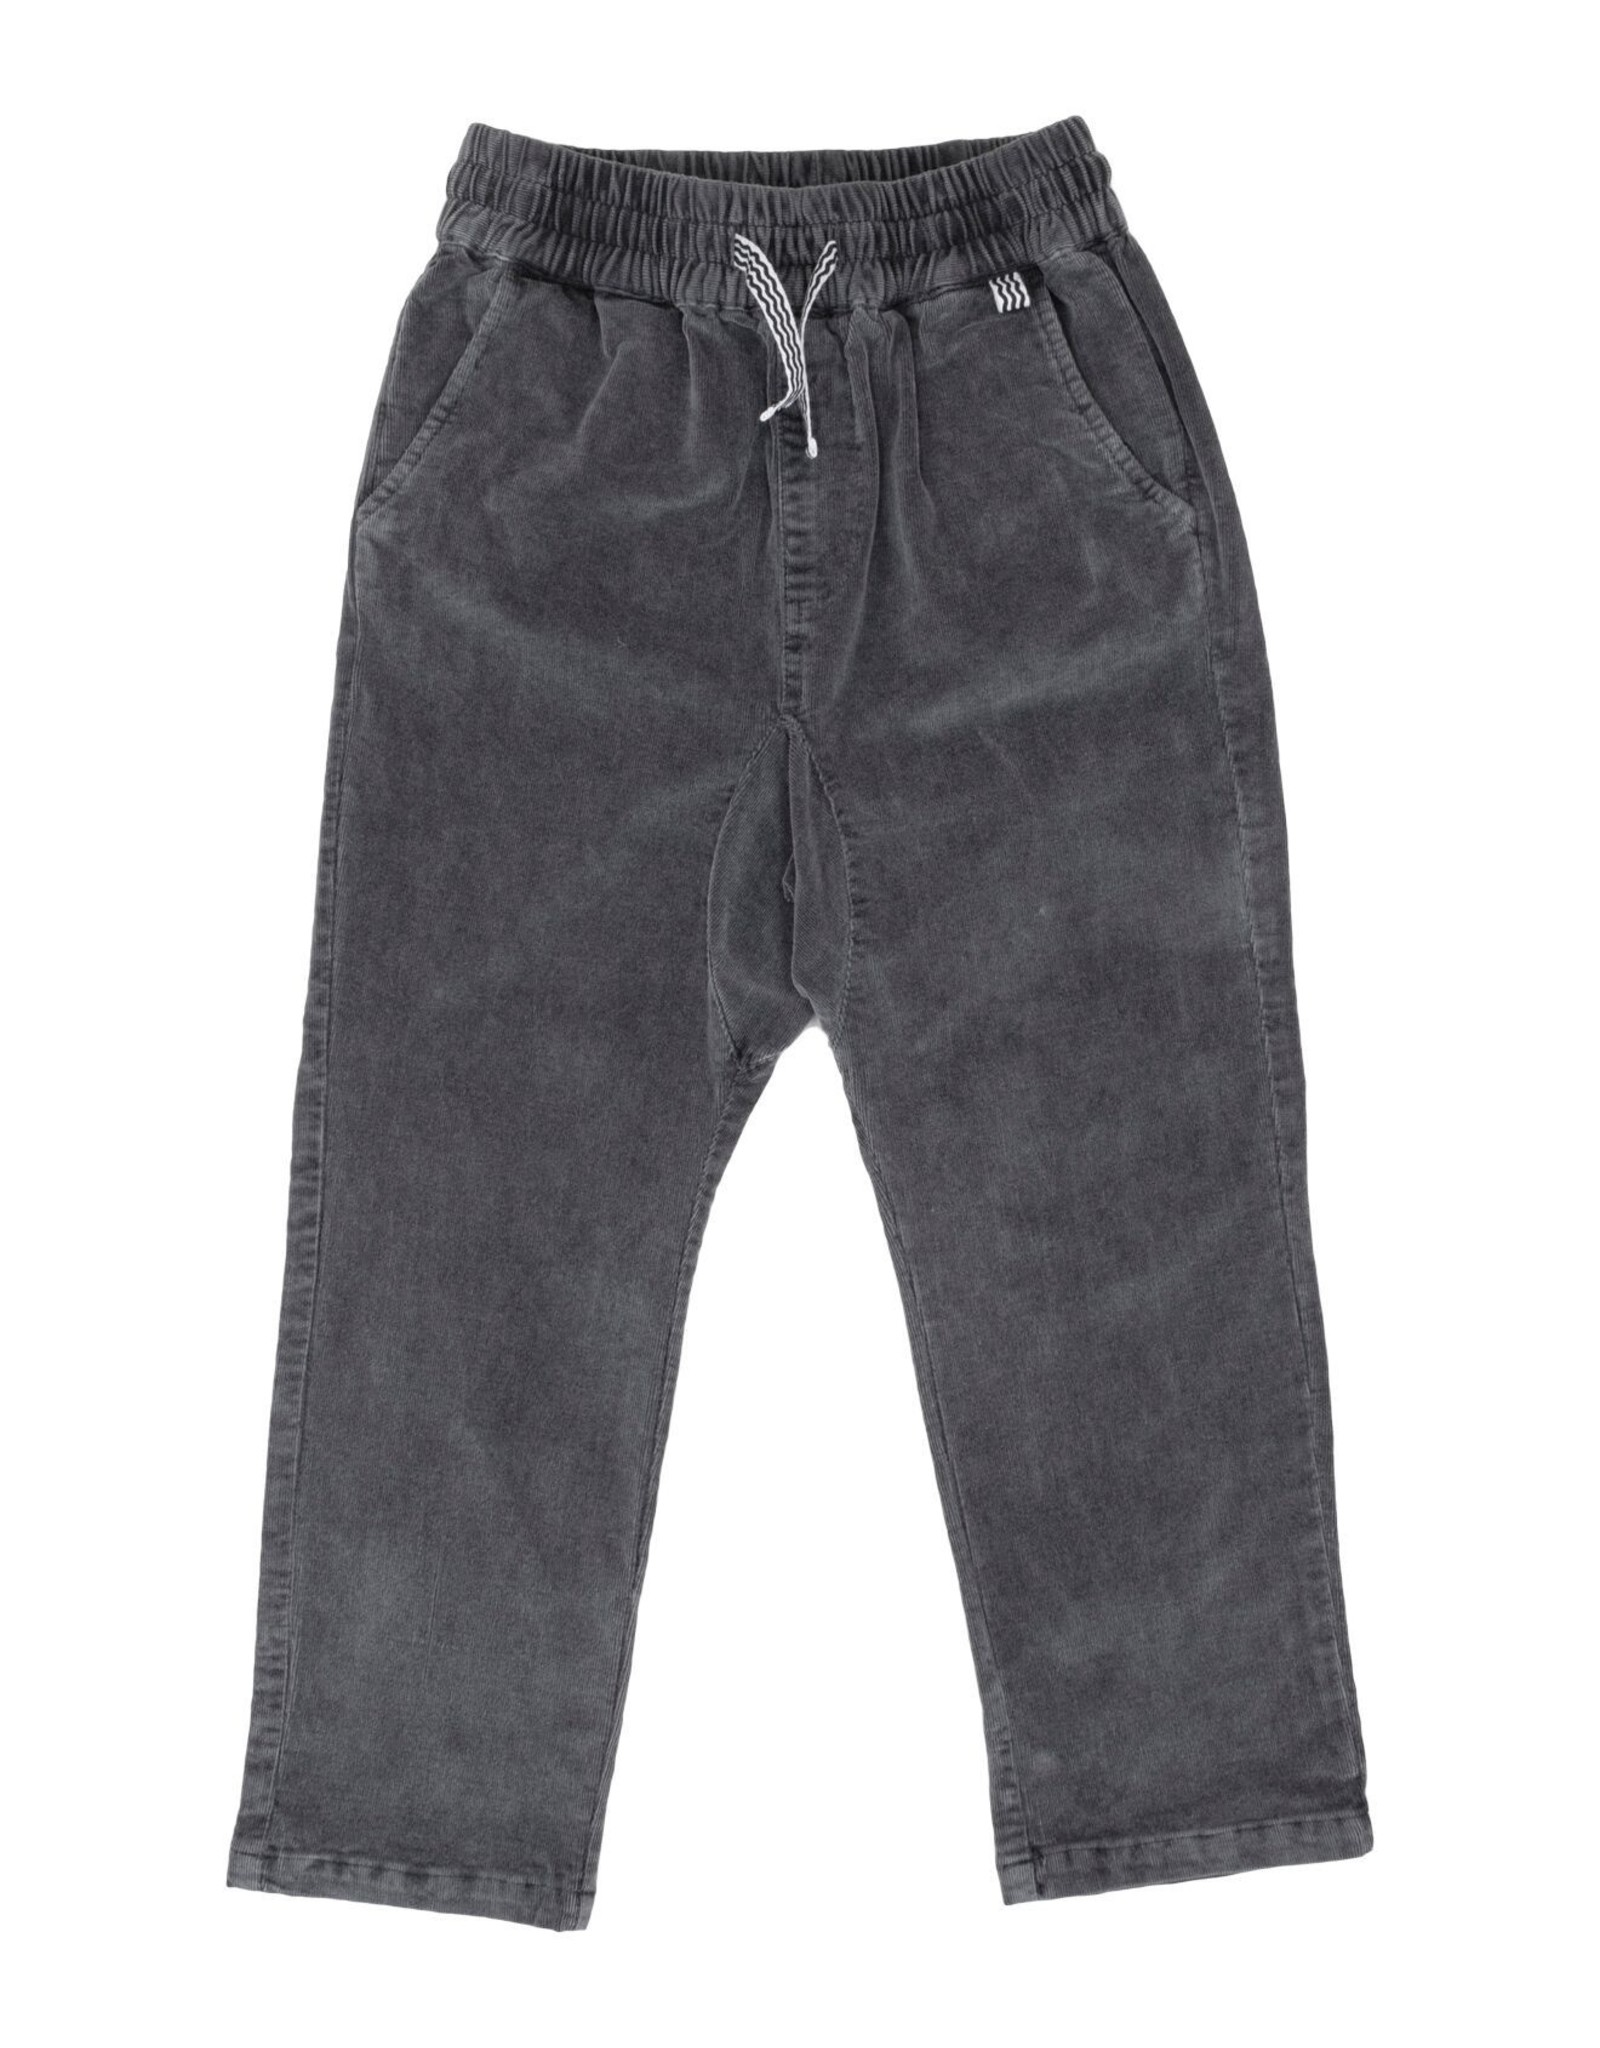 Feather 4 Arrow weekender pant- charcoal